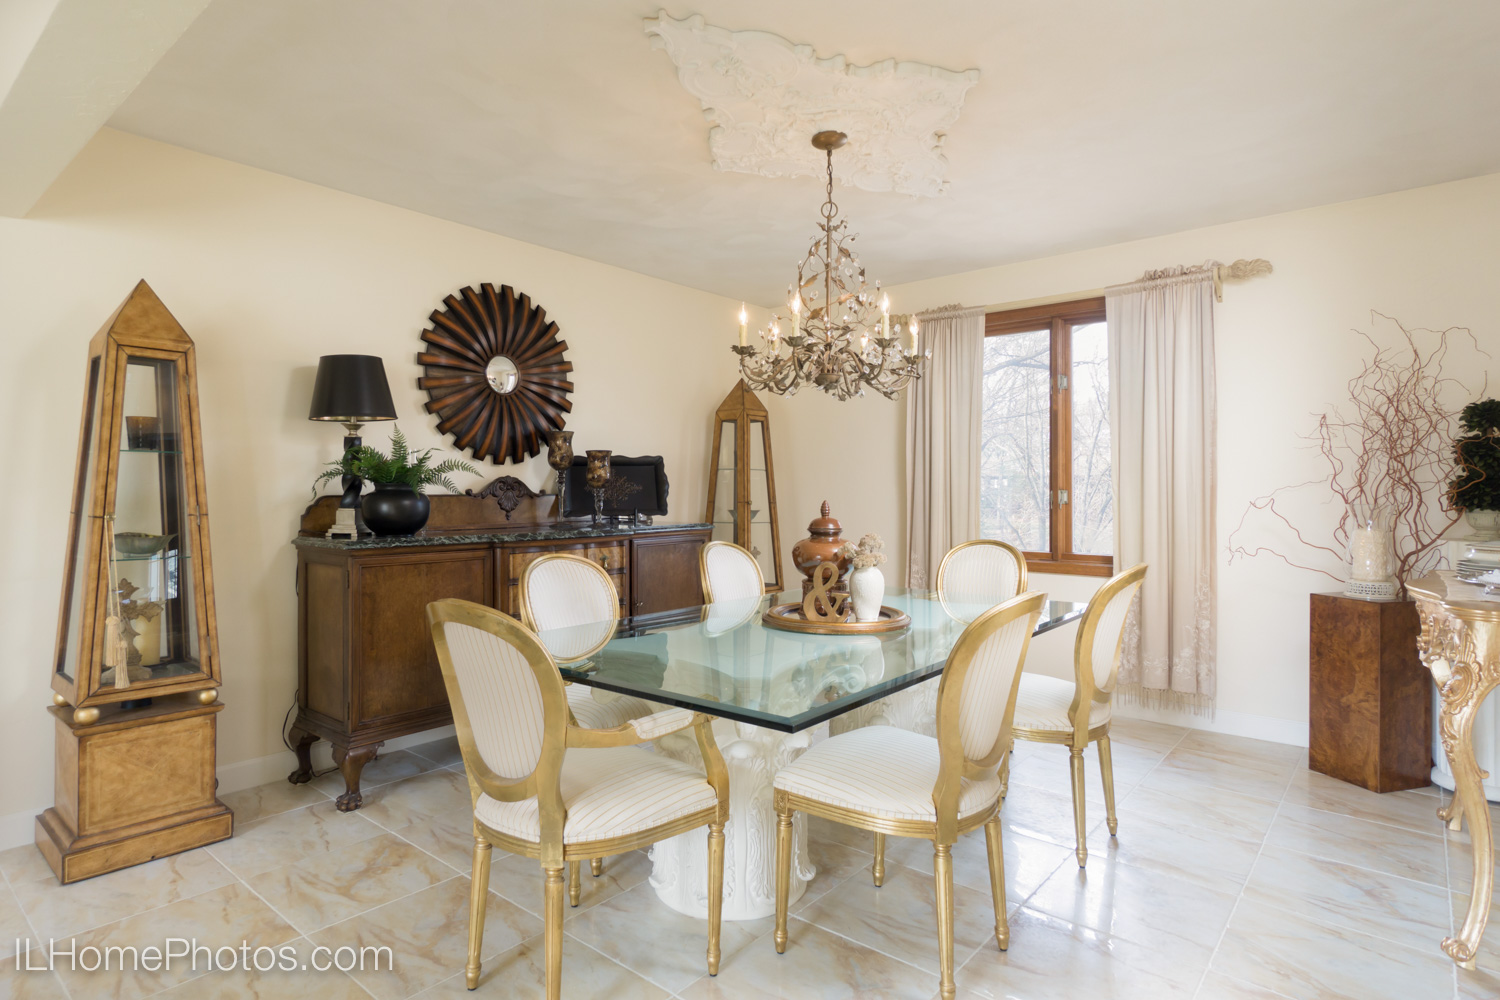 Interior dining room photograph for real estate in Dunlap, IL :: Illinois Home Photography by Michael Gowin, Lincoln, IL